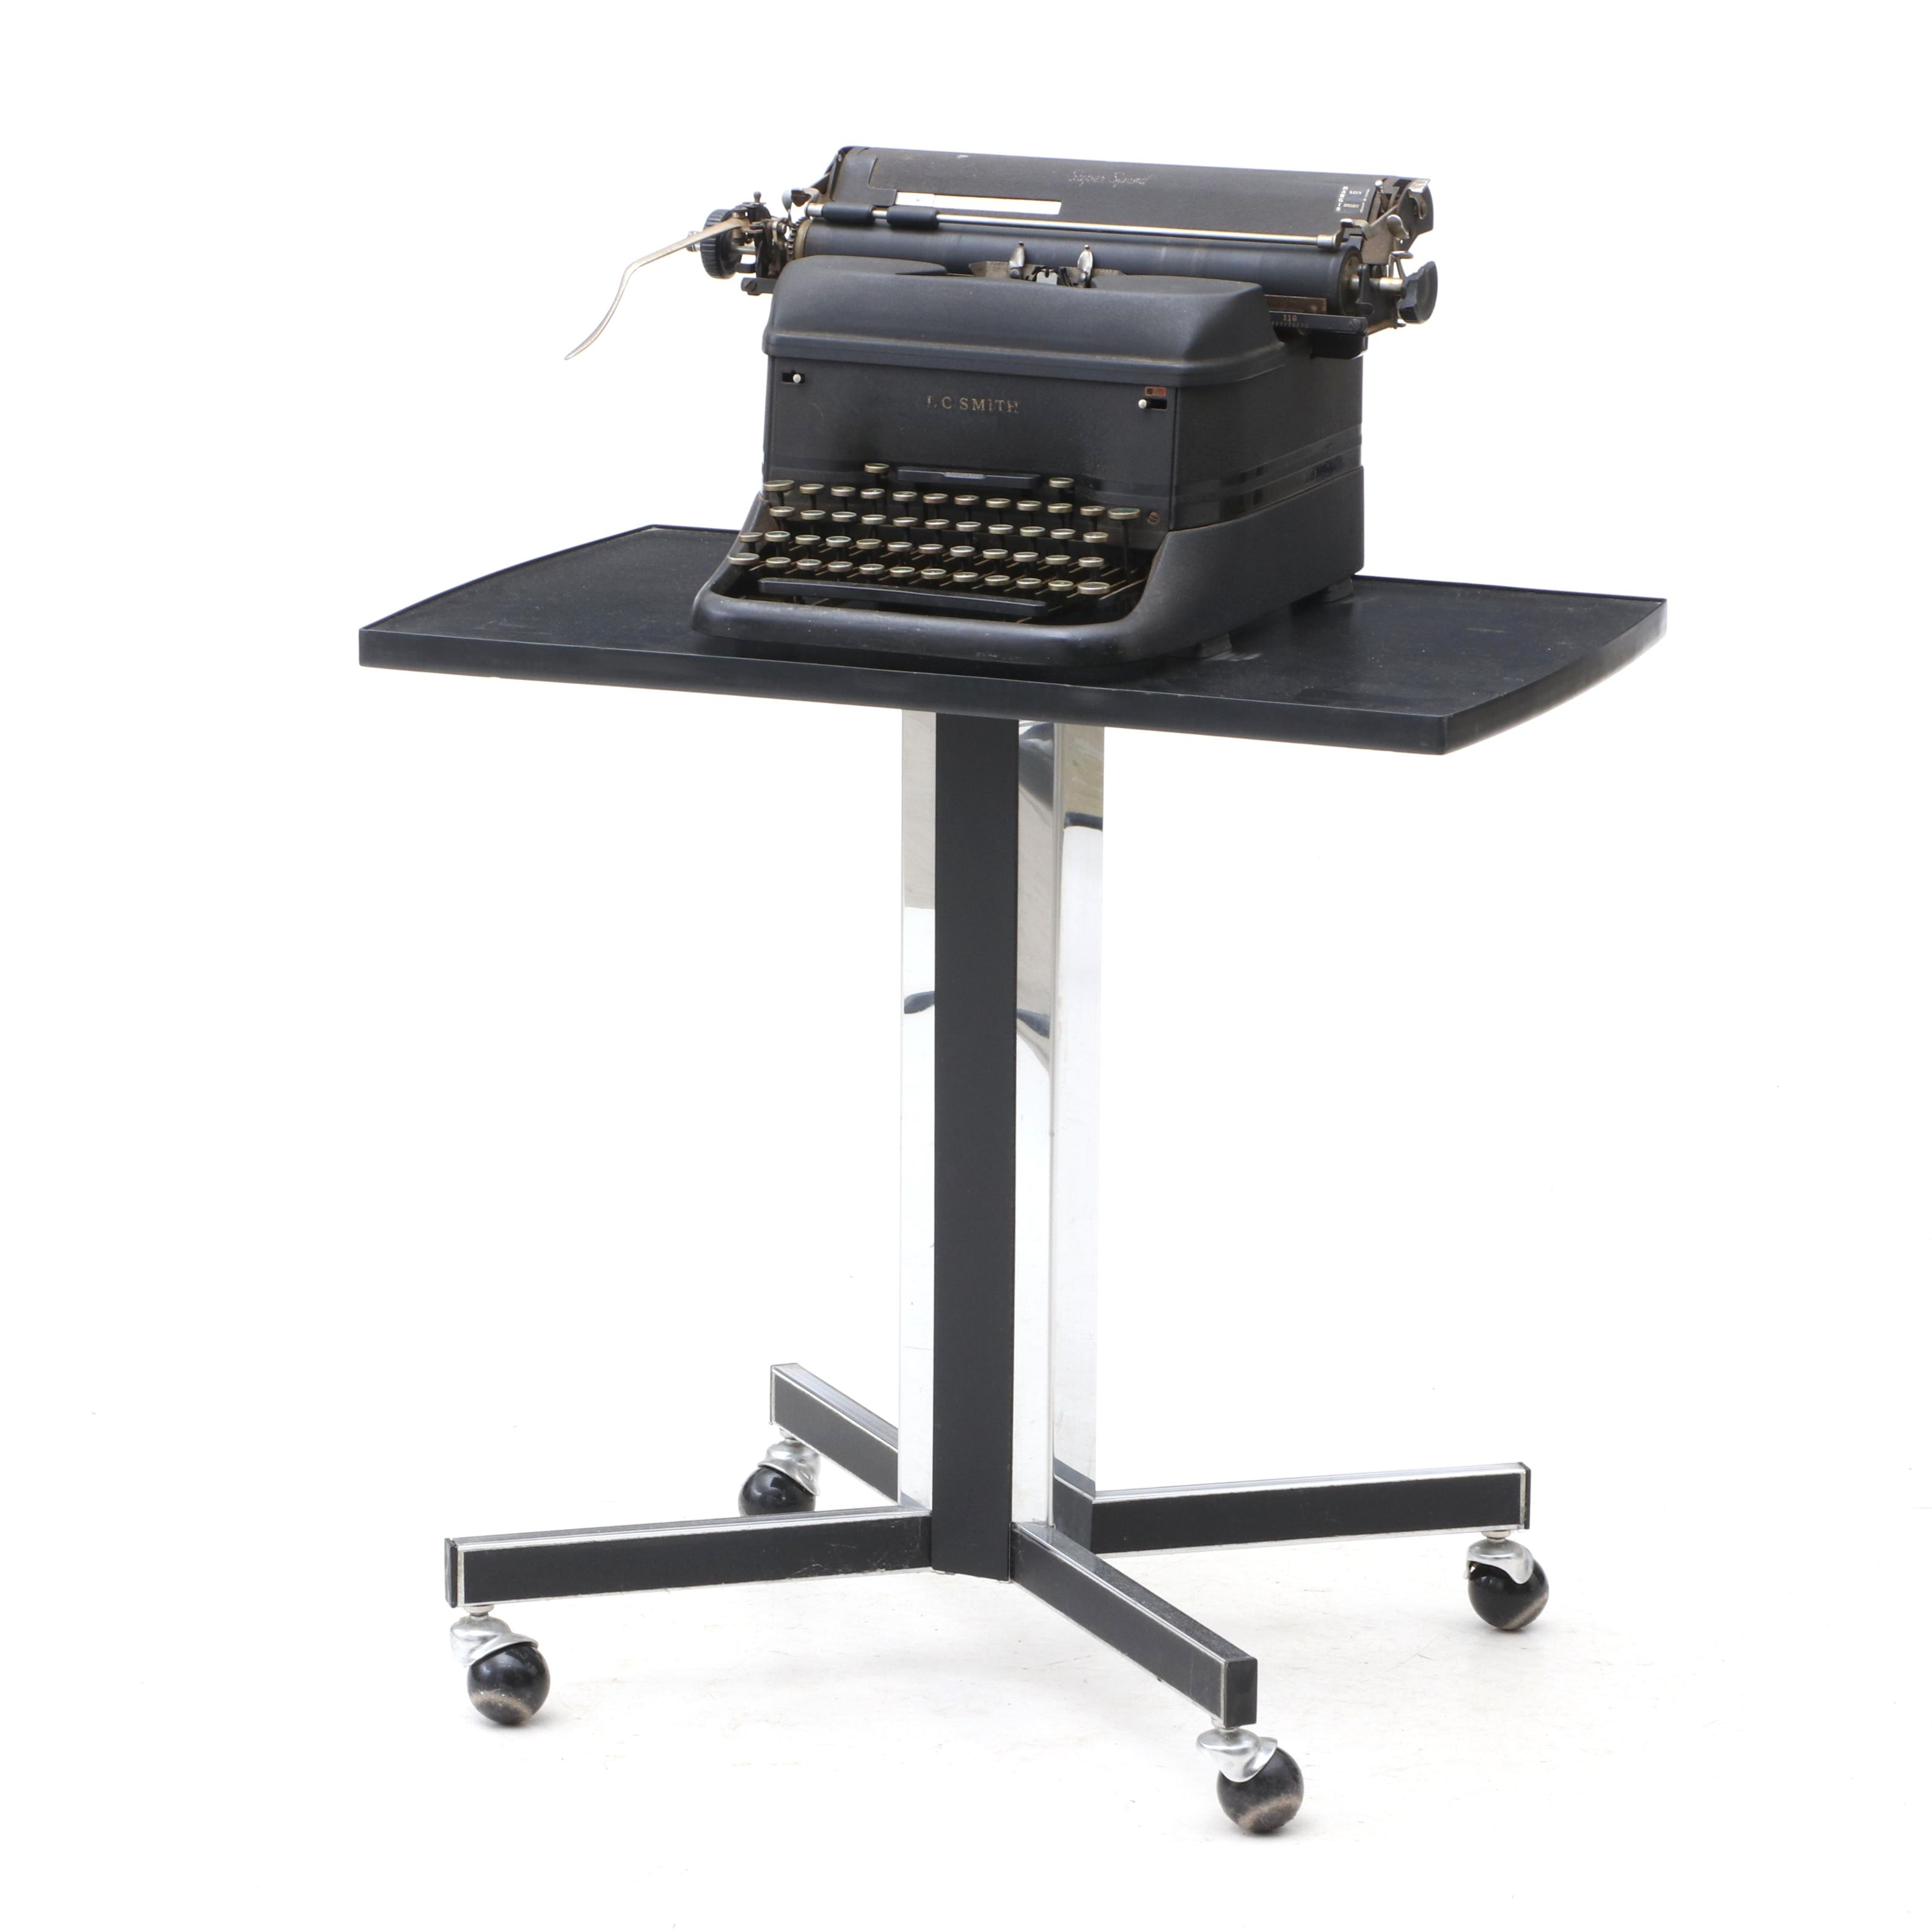 Gusdorf Modernist Stand and Vintage Smith Corona Typewriter